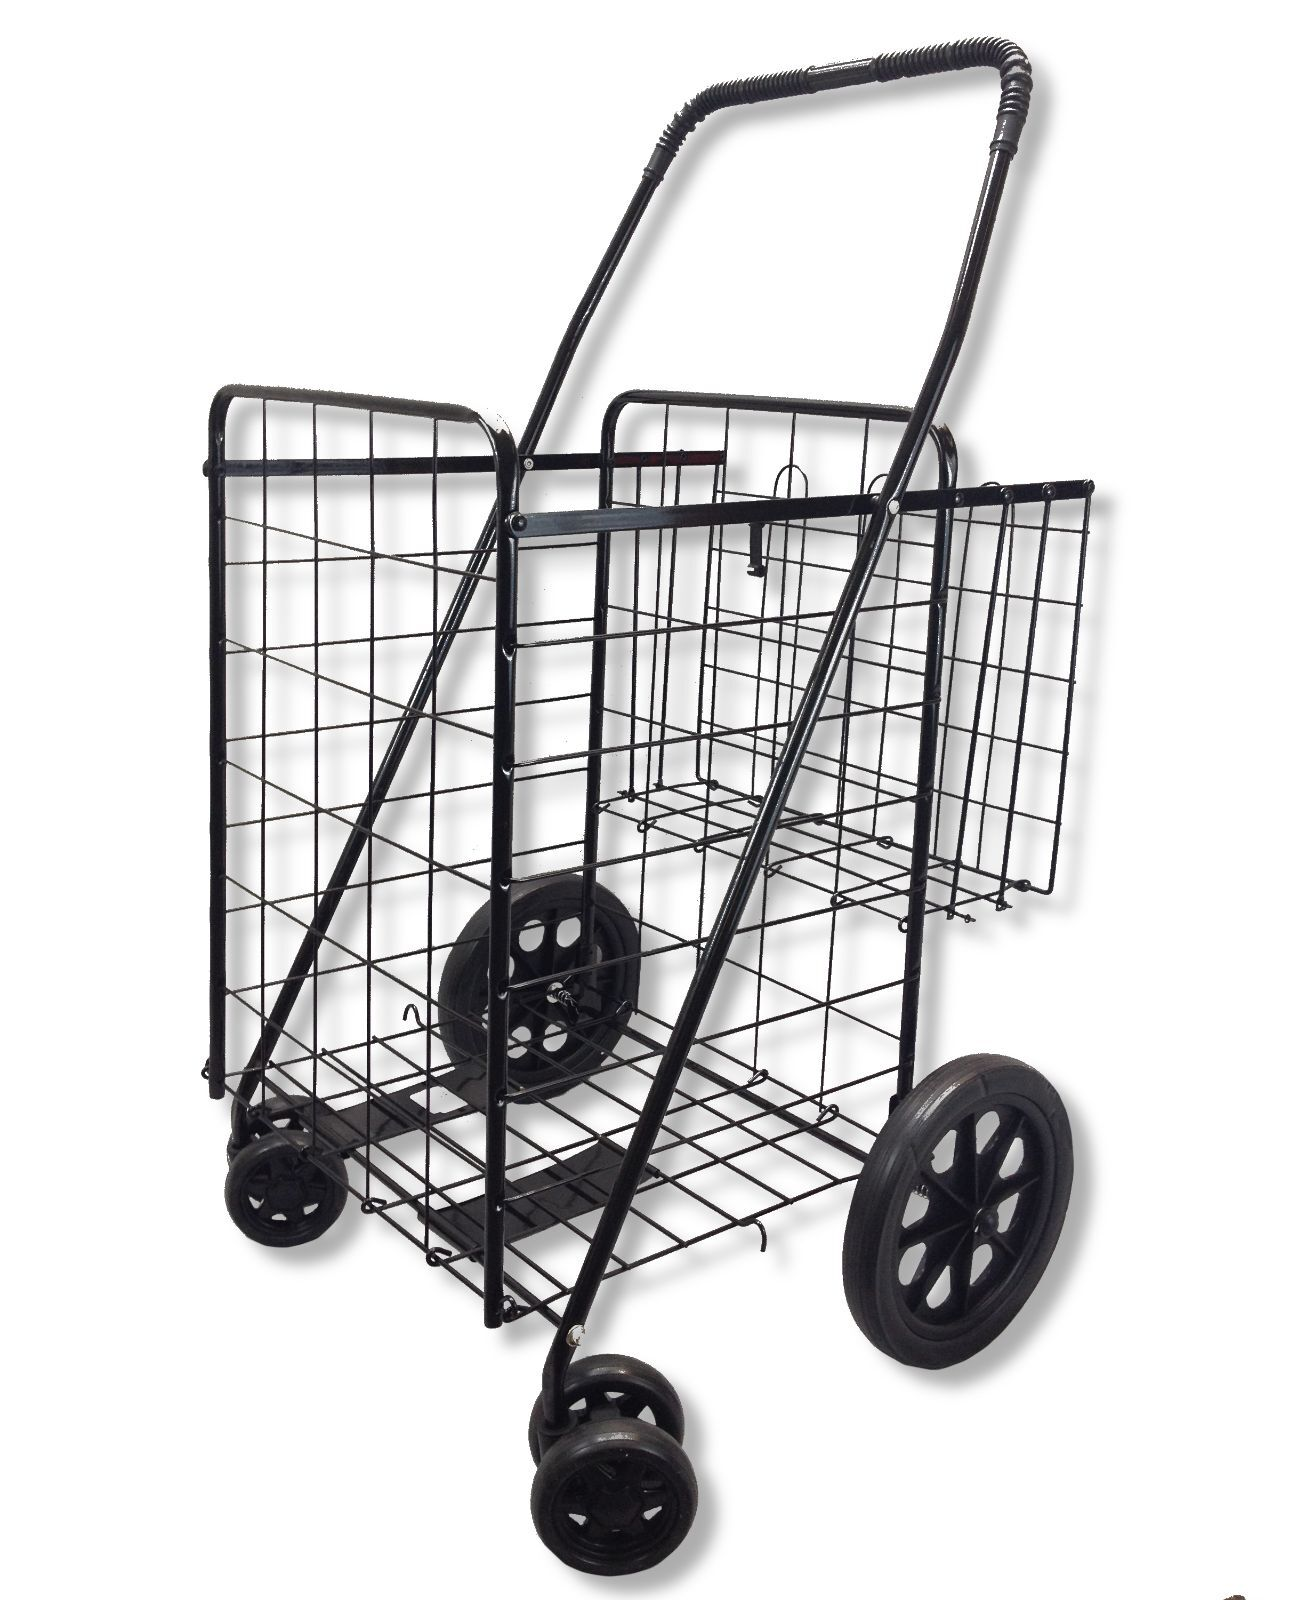 Image Result For Rolling Laundry Carts Wheels